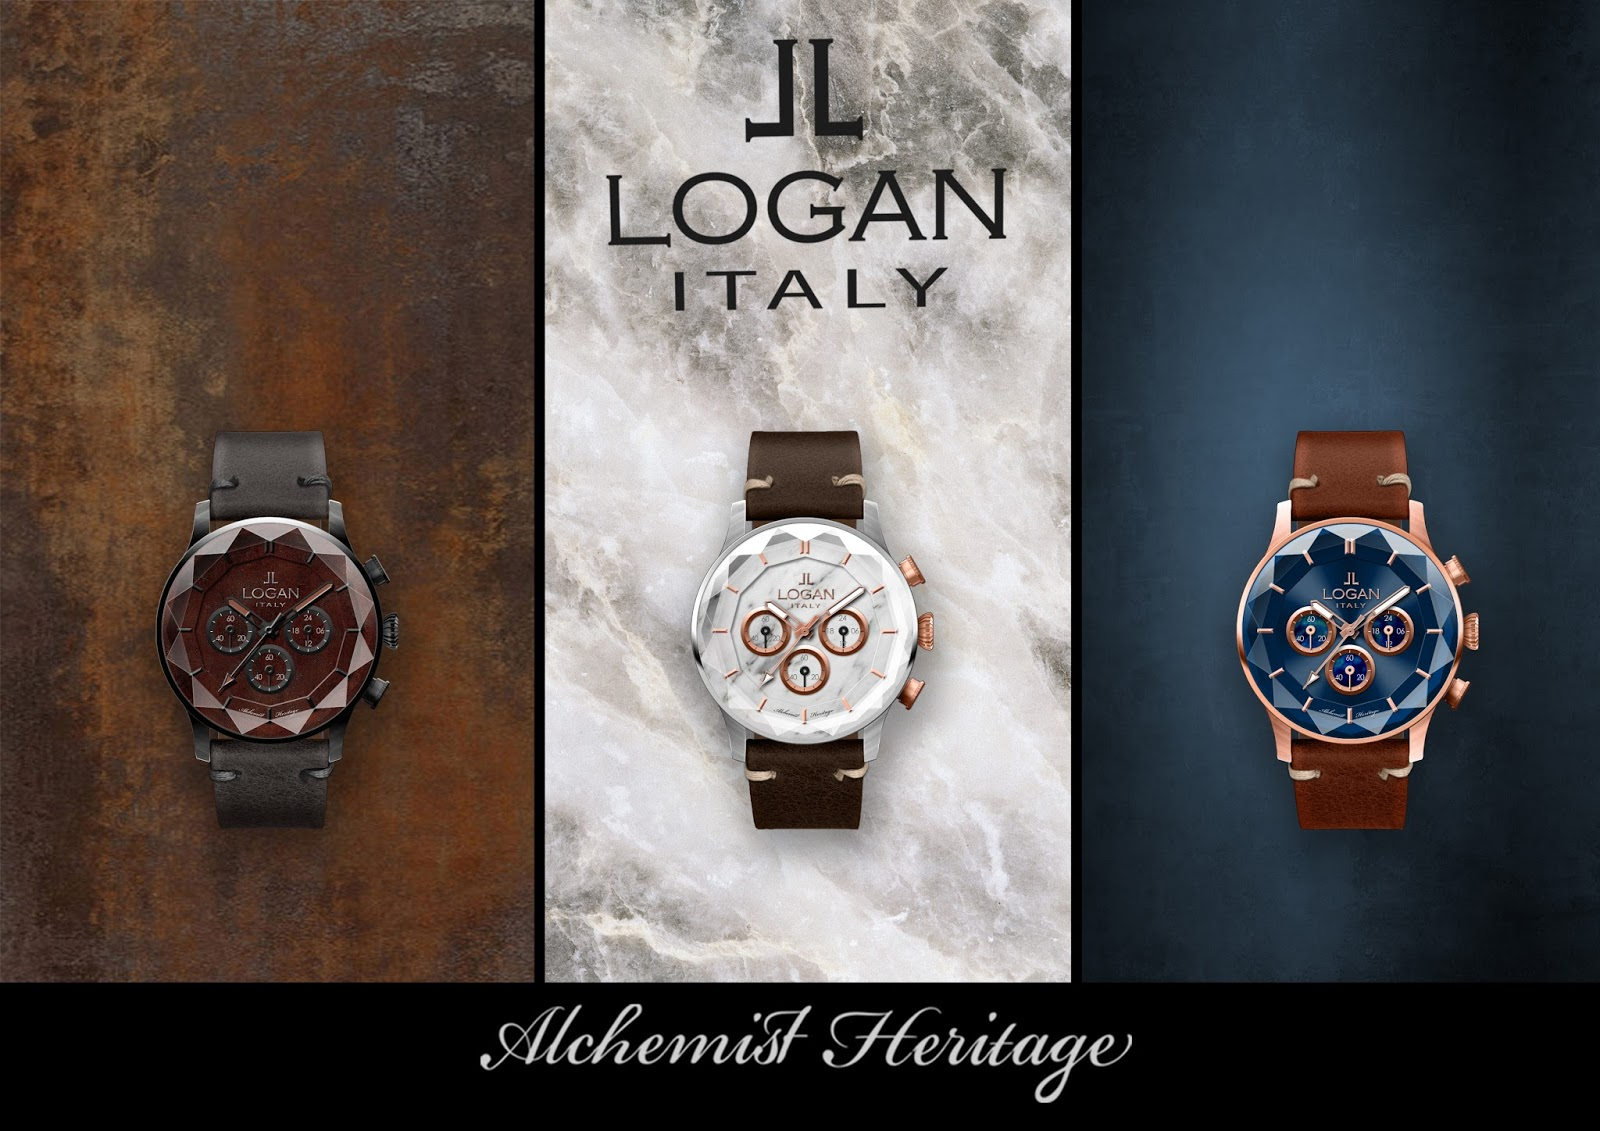 Alchemist Heritage Collection - Eniwhere Fashion Tips - Orologi